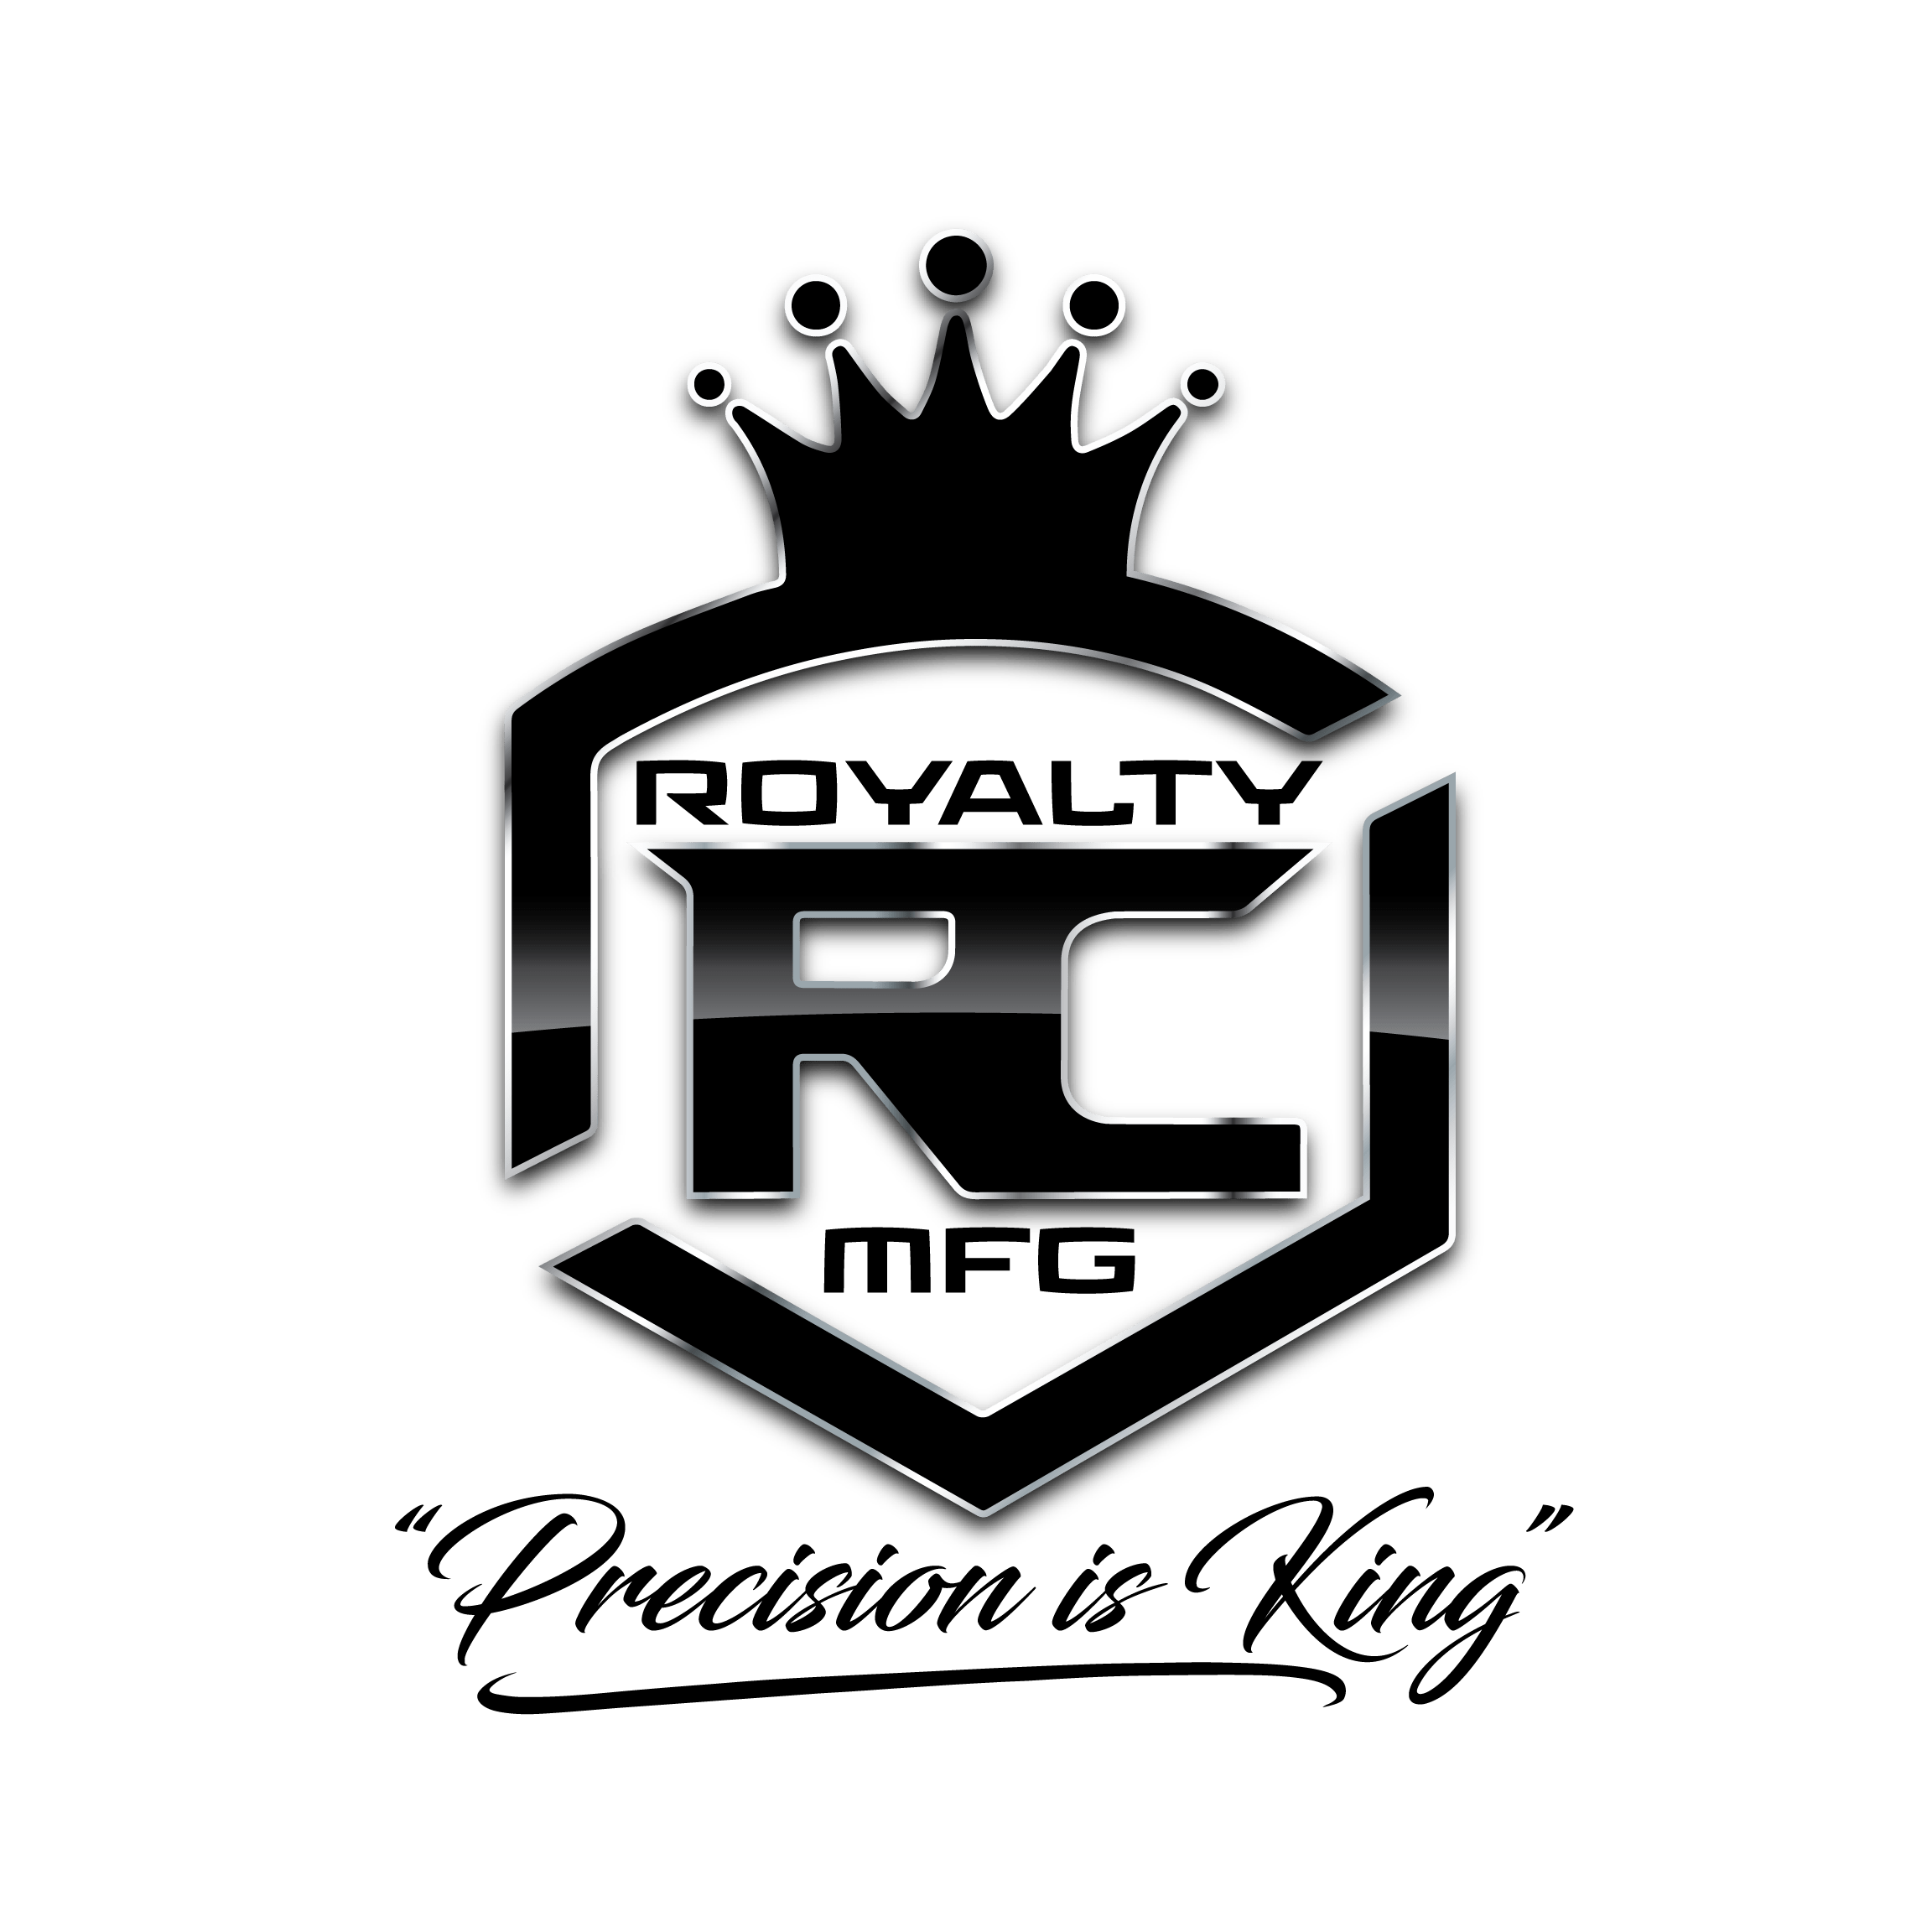 Navigate to the Royalty Rc Mfg homepage